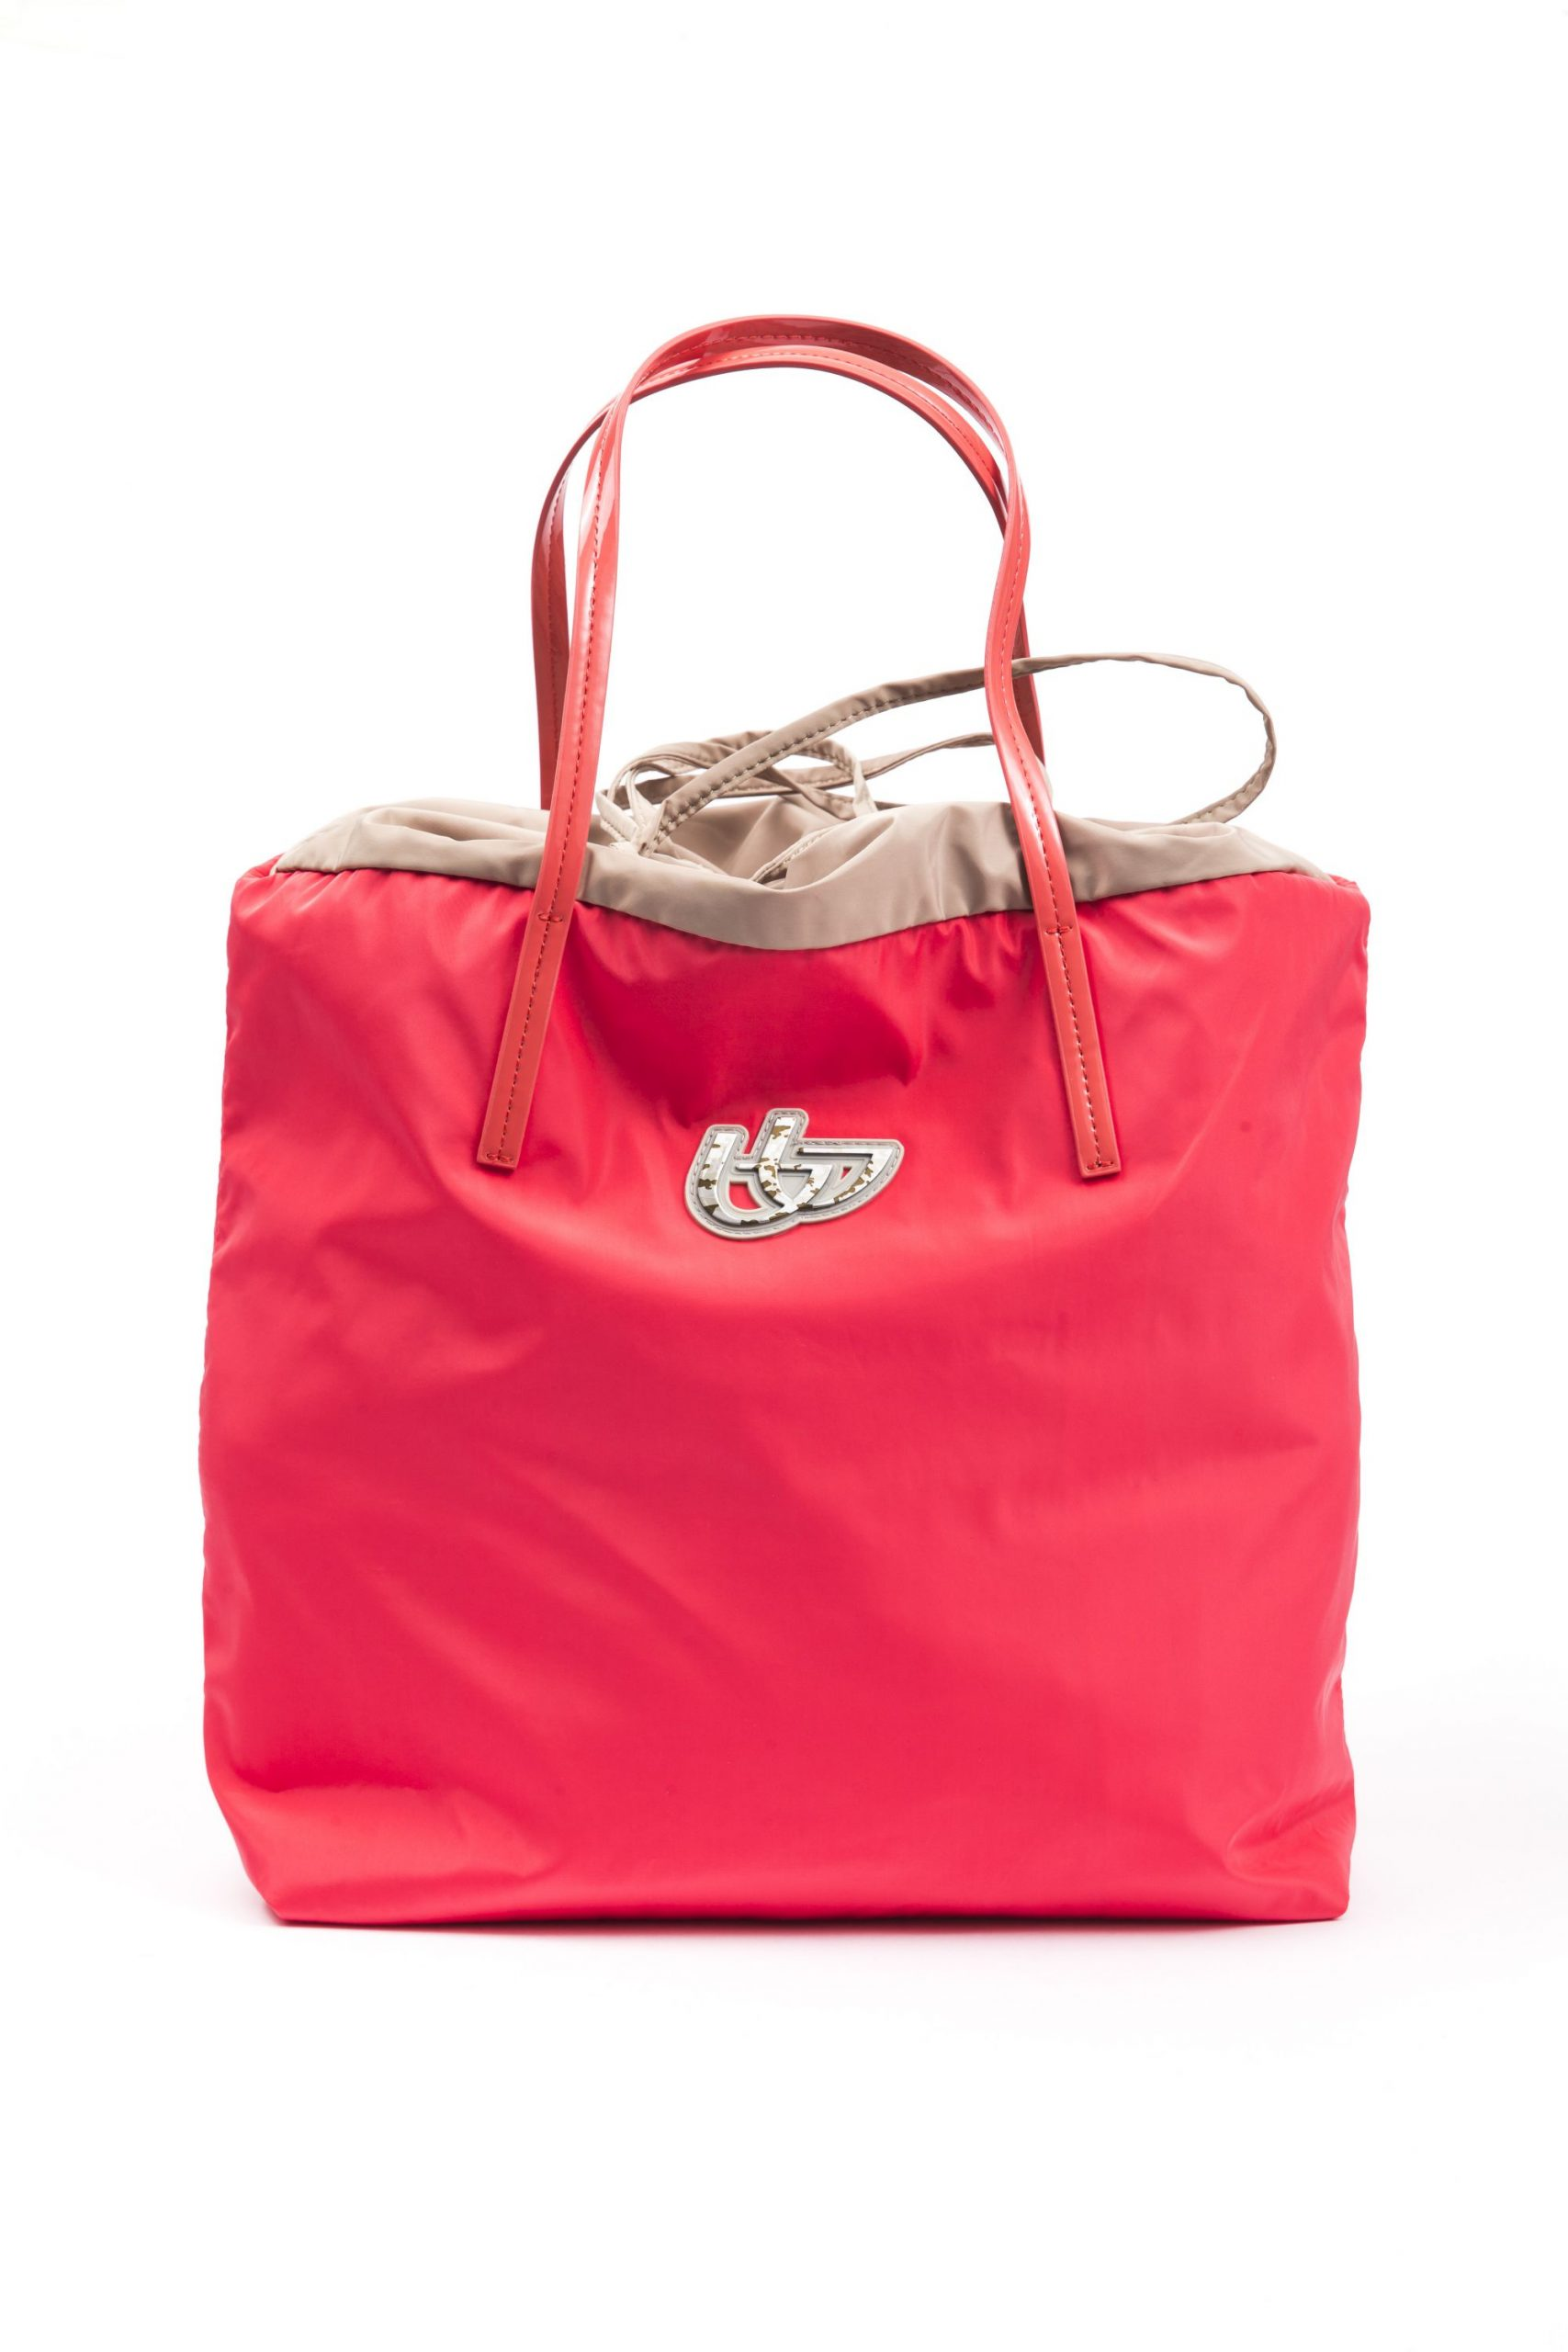 Byblos Women's Shopping Handbag Coral Red BY665707